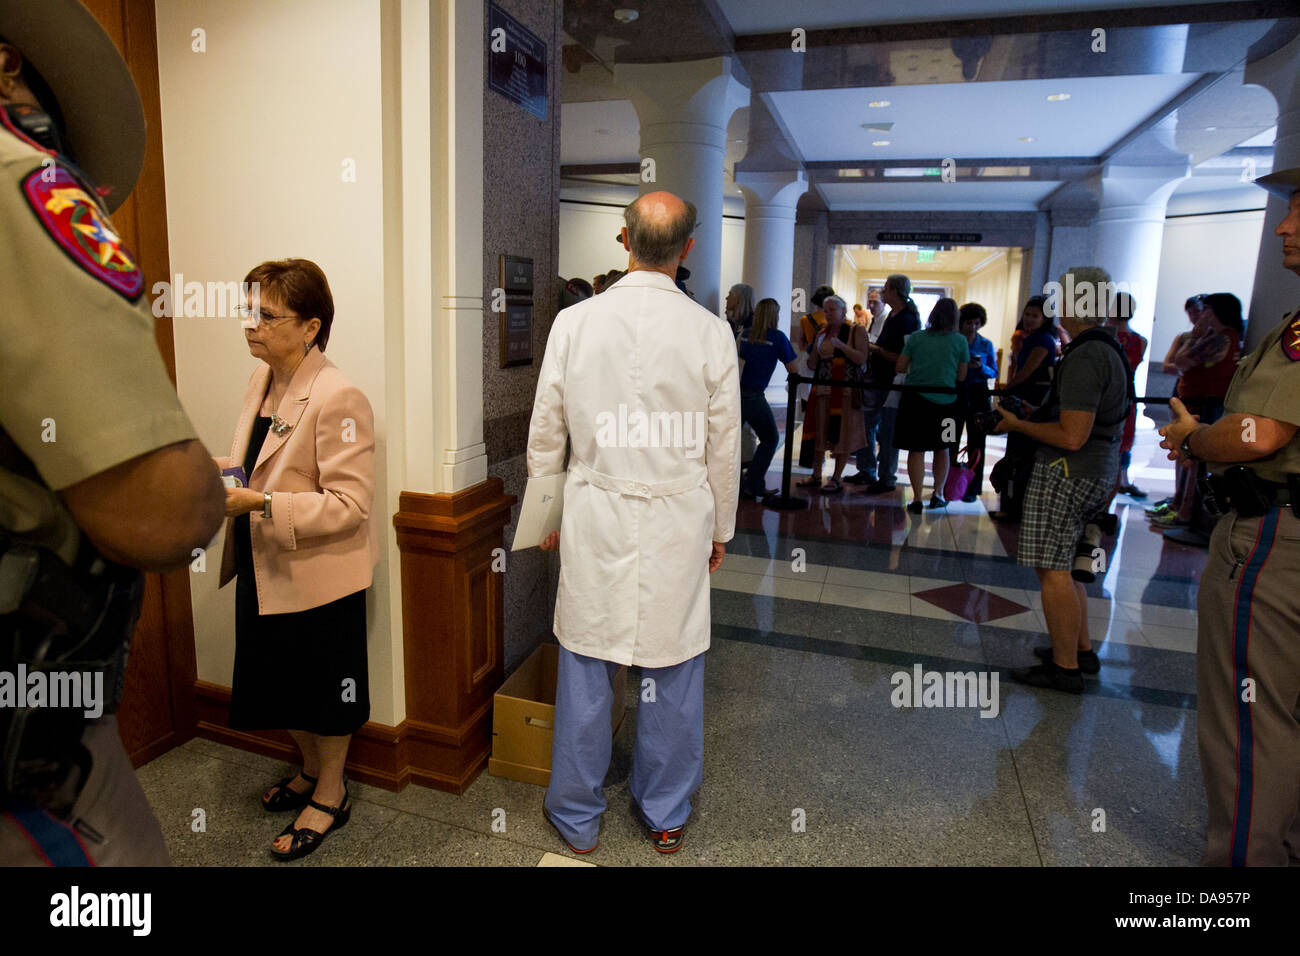 Medical doctor in white lab coat and scrubs stands in hallway of Texas Capitol building waiting for his turn to - Stock Image